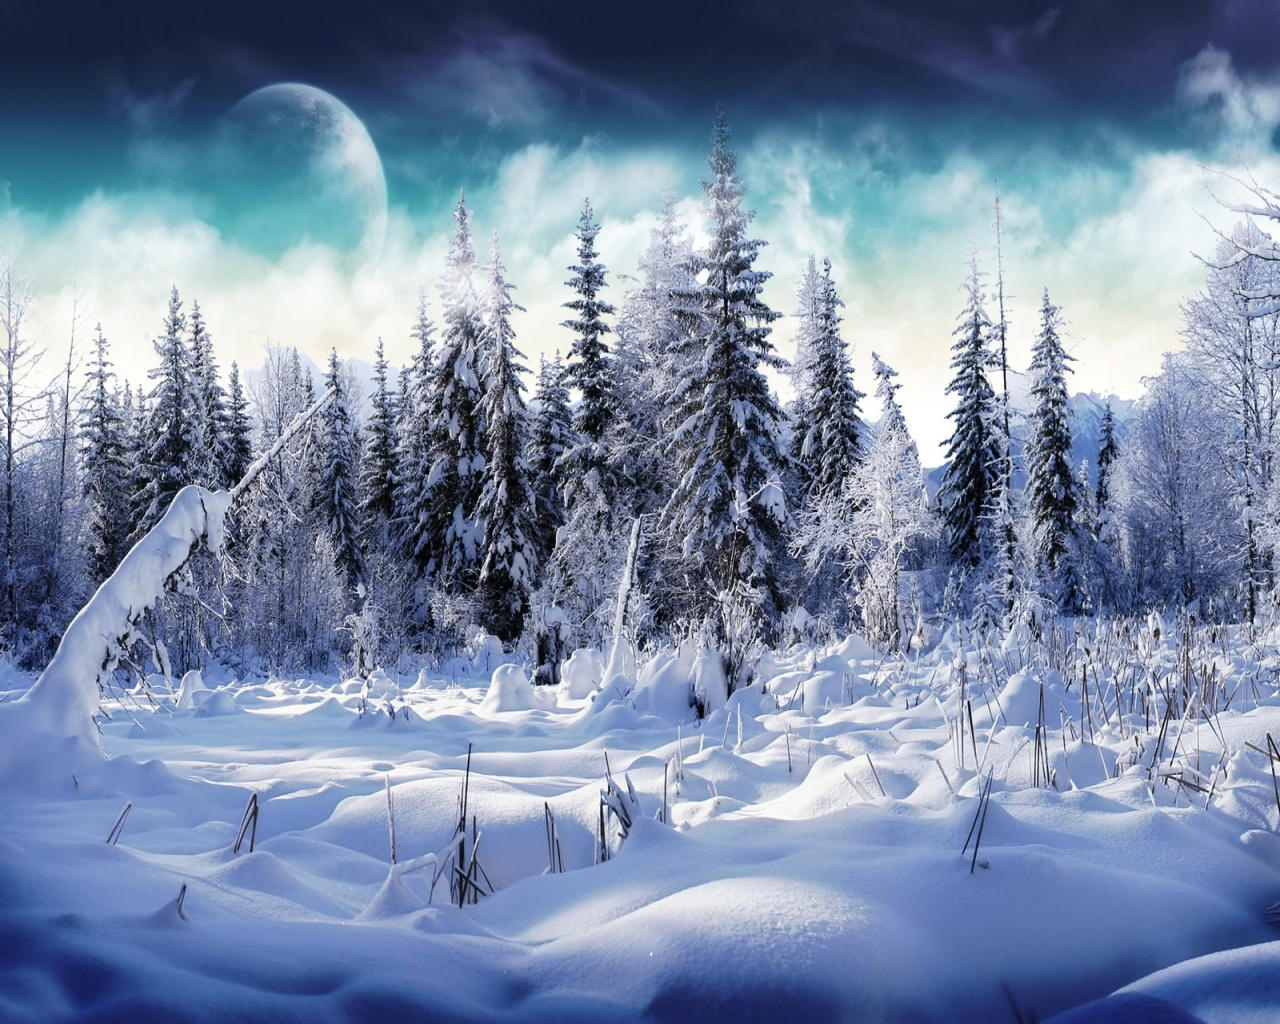 1280x1024 winter wonderland 2 desktop pc and mac wallpaper